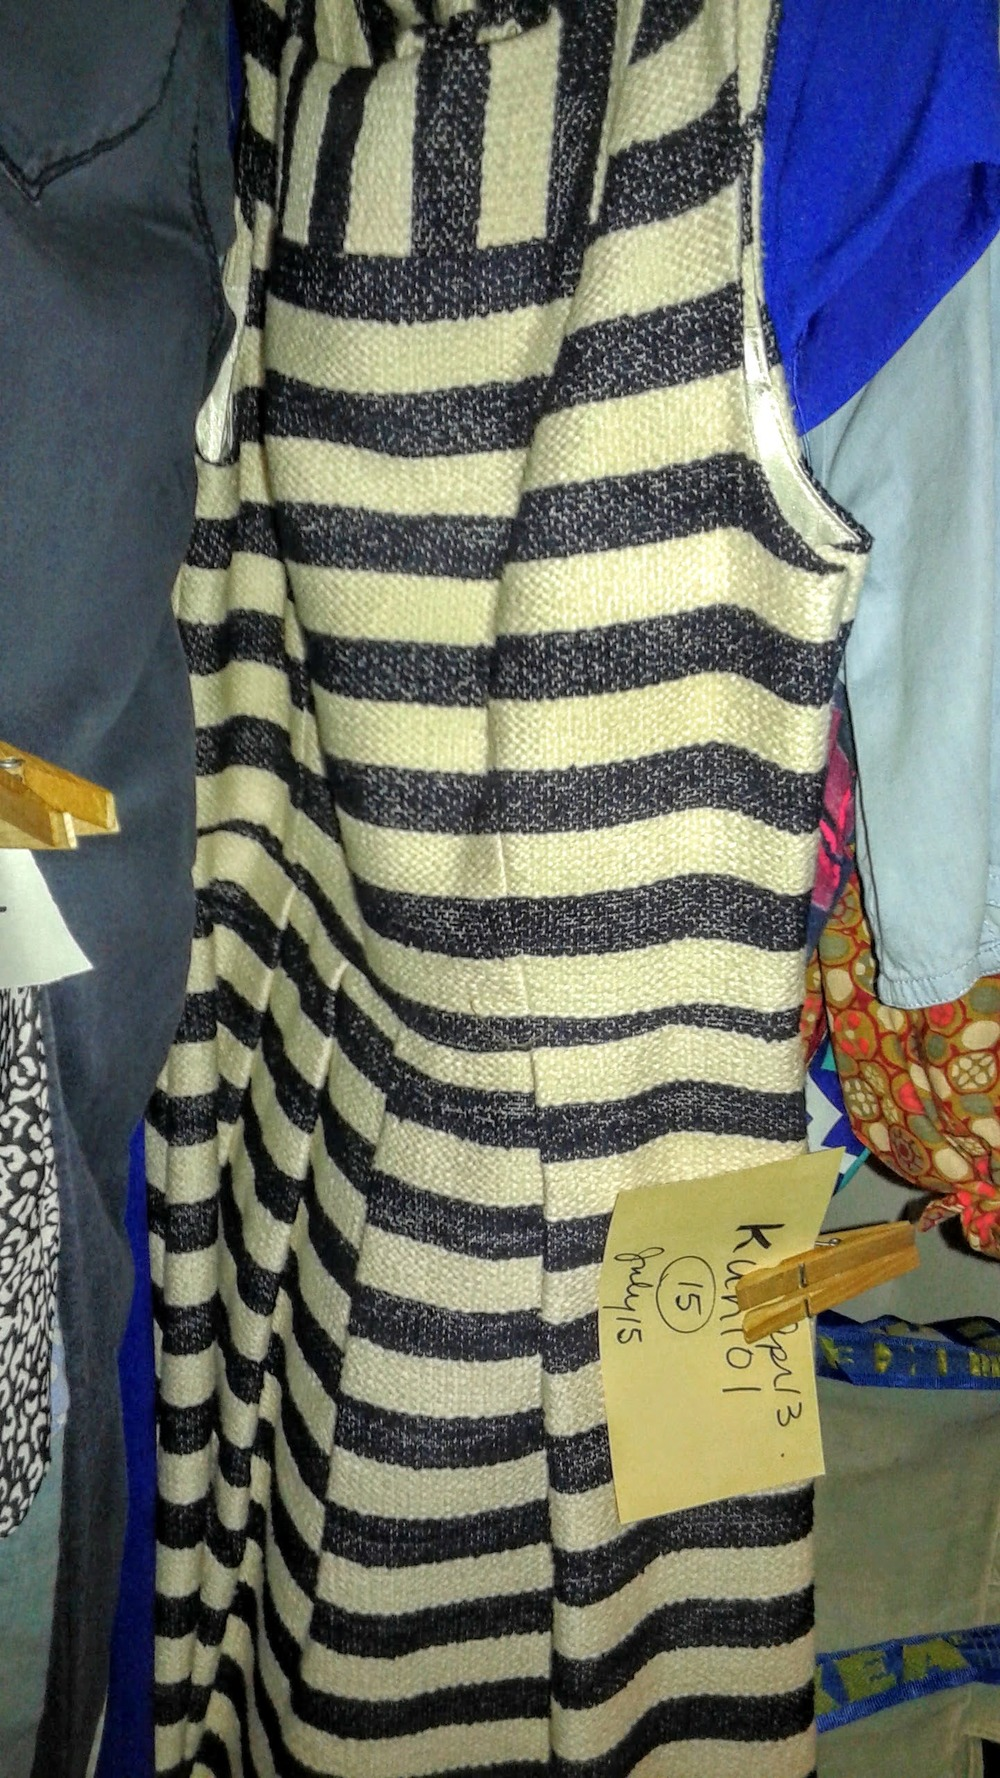 Stripped dress in a nubby/tweedy material